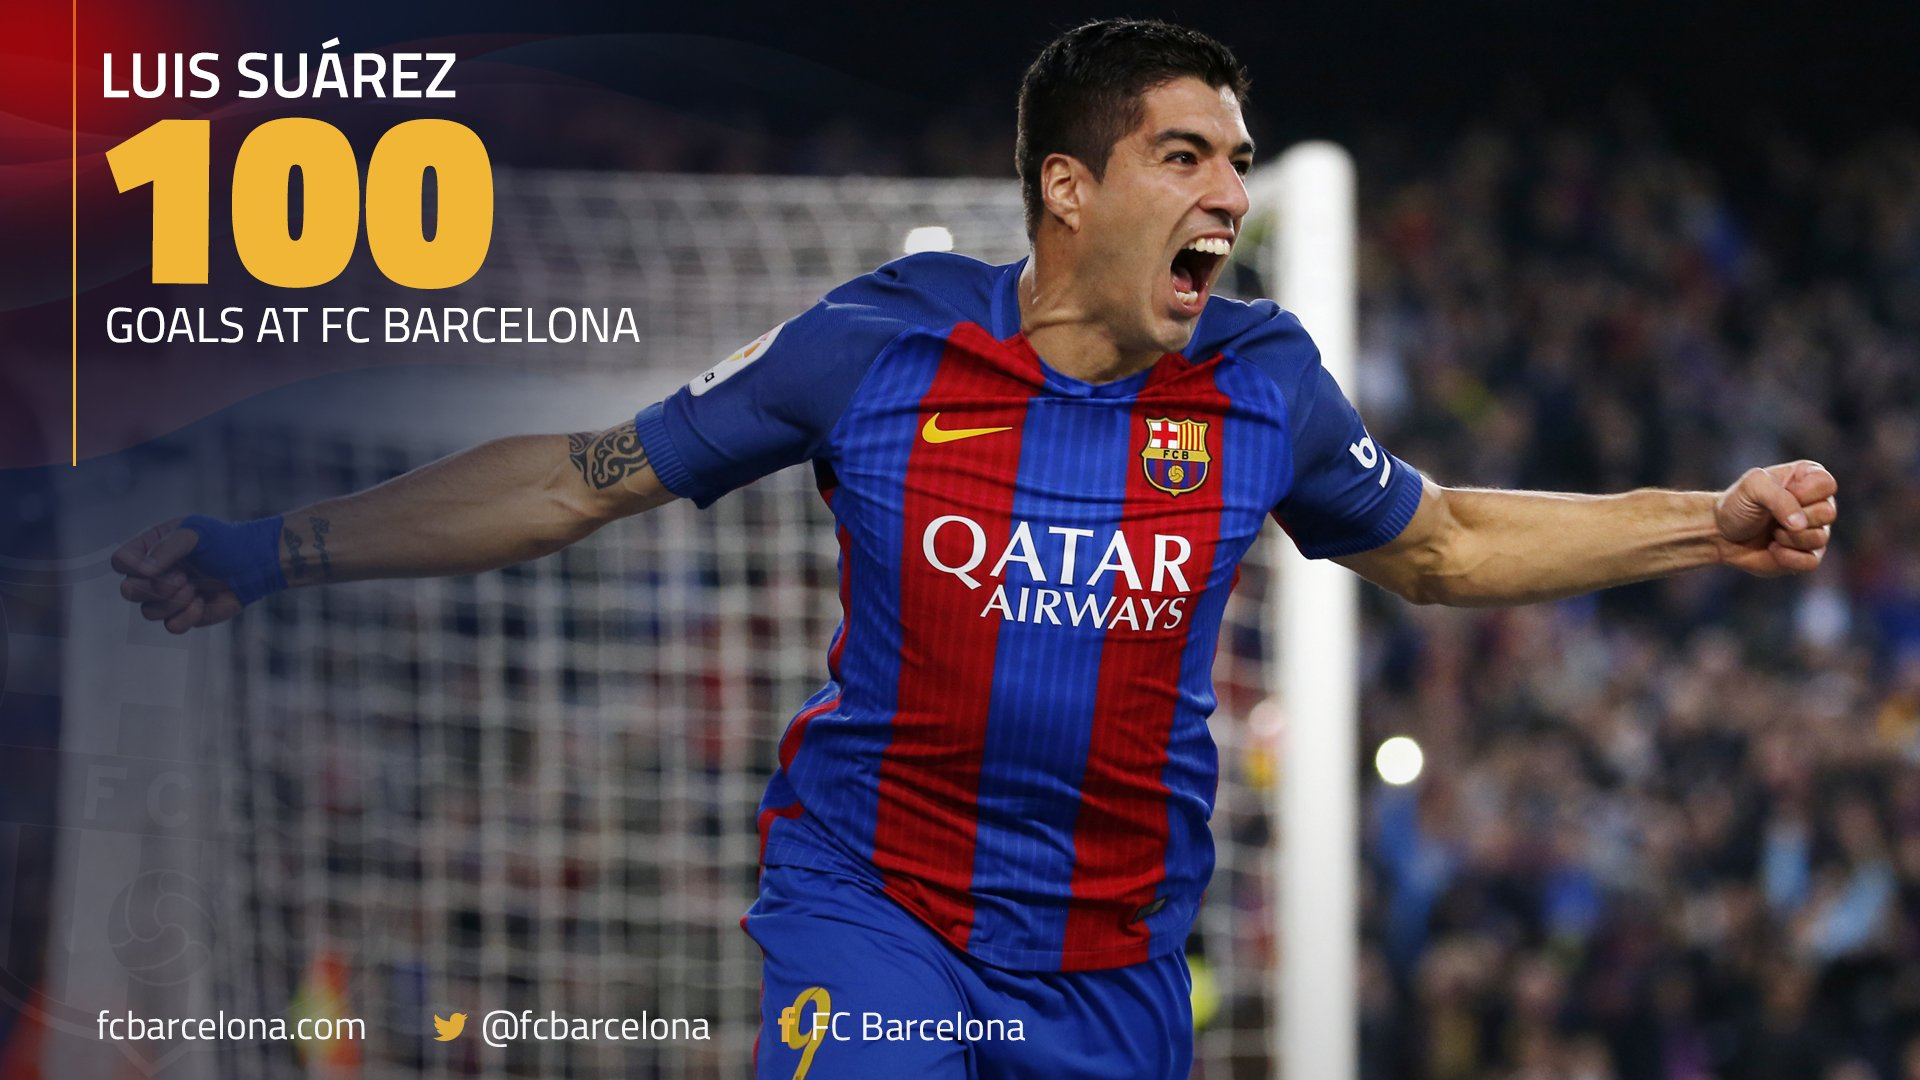 ⚽️ The strike was goal number �� in a Barça shirt for @LuisSuarez9 #FCBLive #CopaFCB https://t.co/VO0hWEcmC2